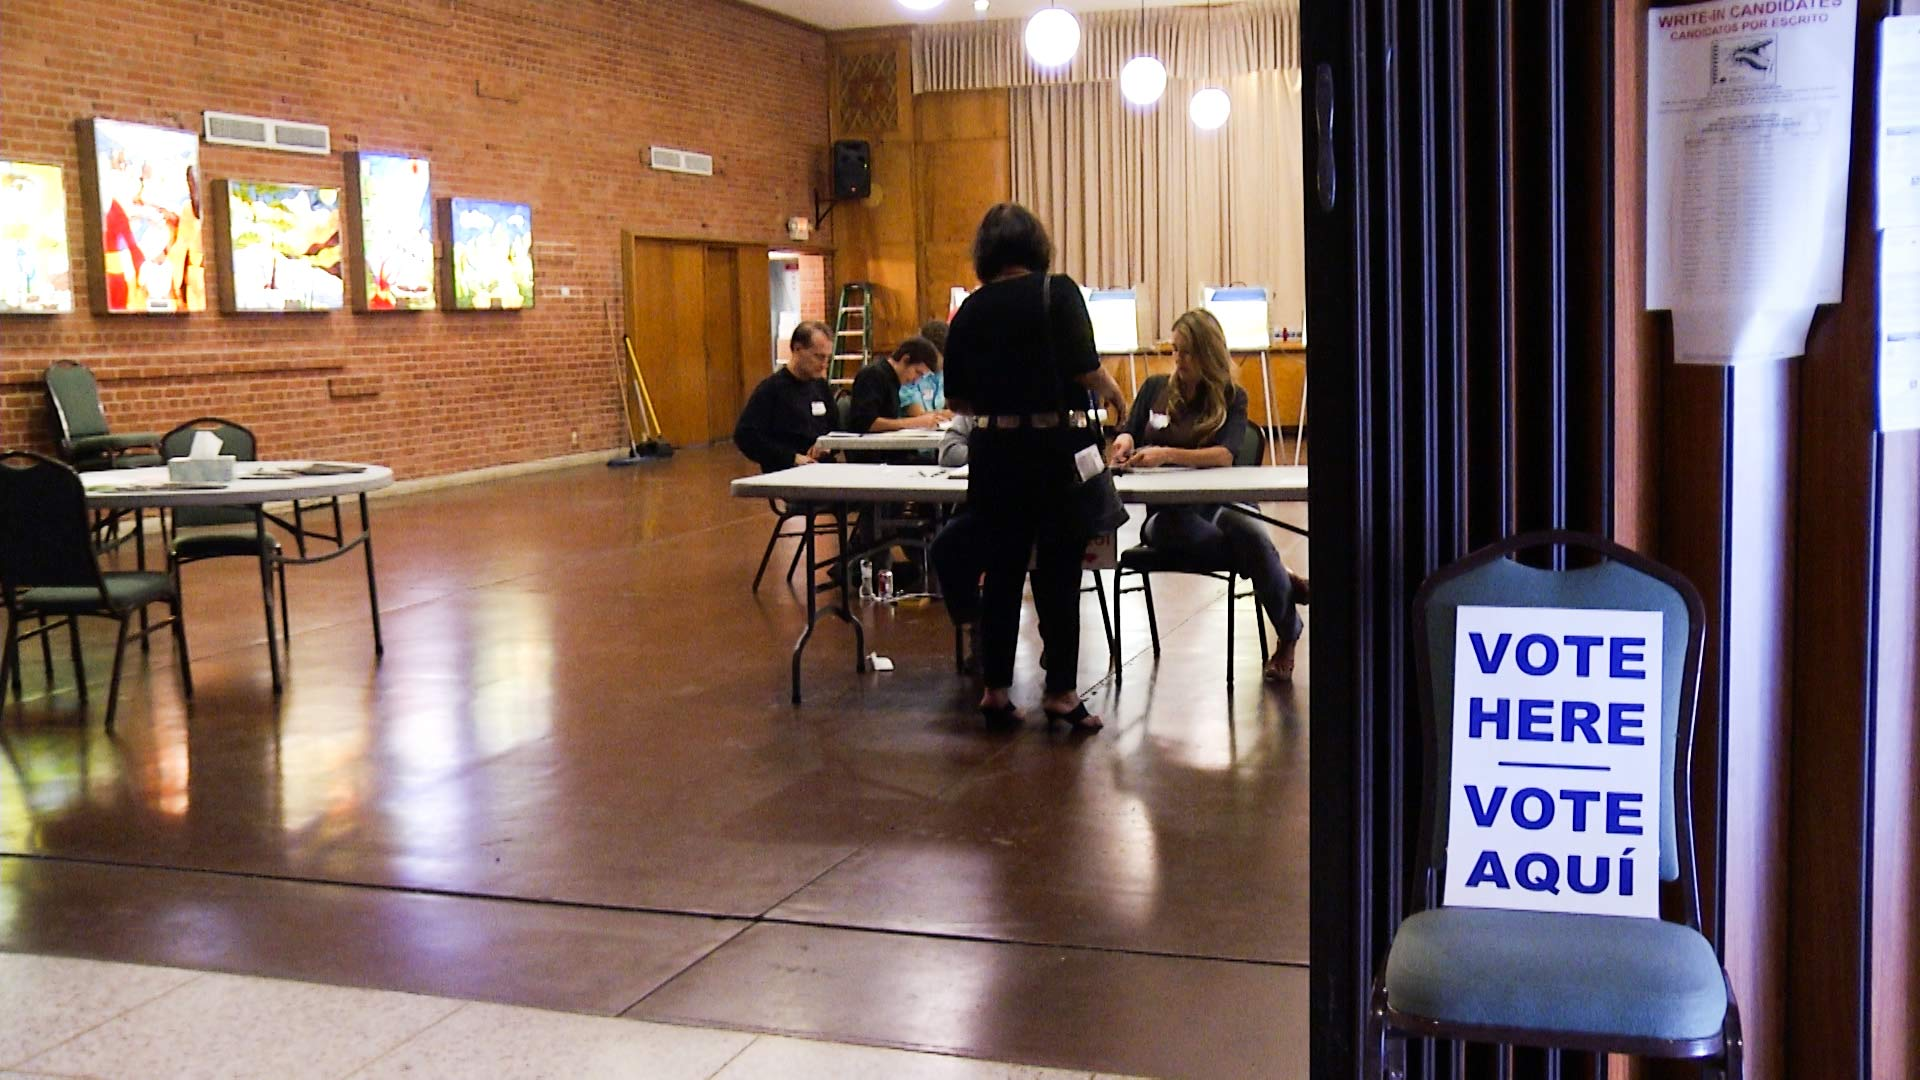 Volunteers check voter registration at a voting station.